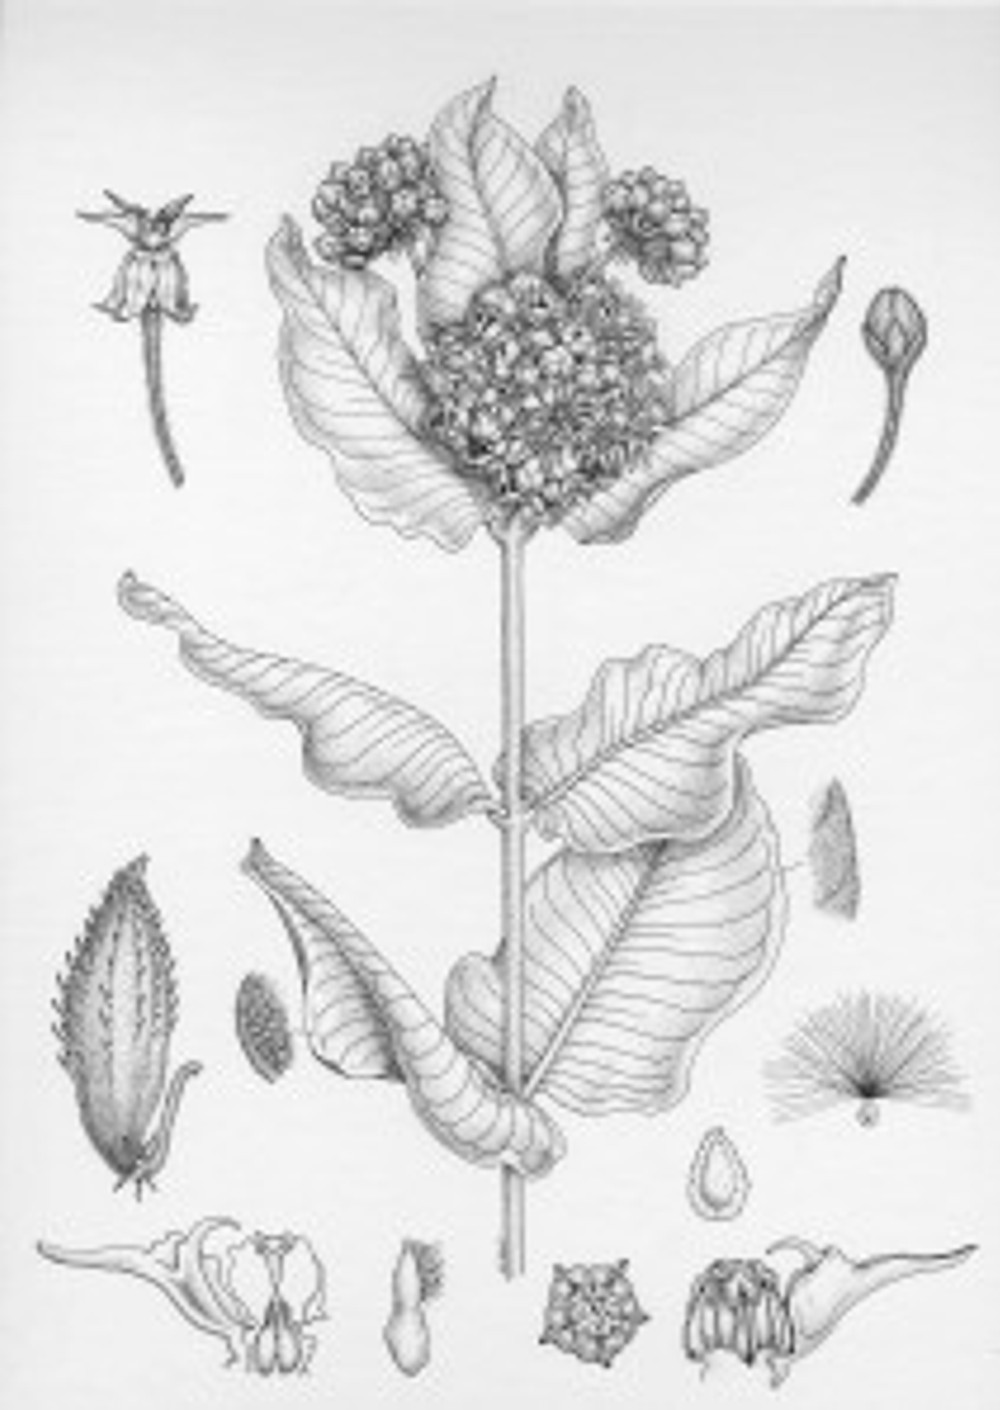 Asclepias speciosa, Lesley Randall, pen and ink on illustration board, © 2014.